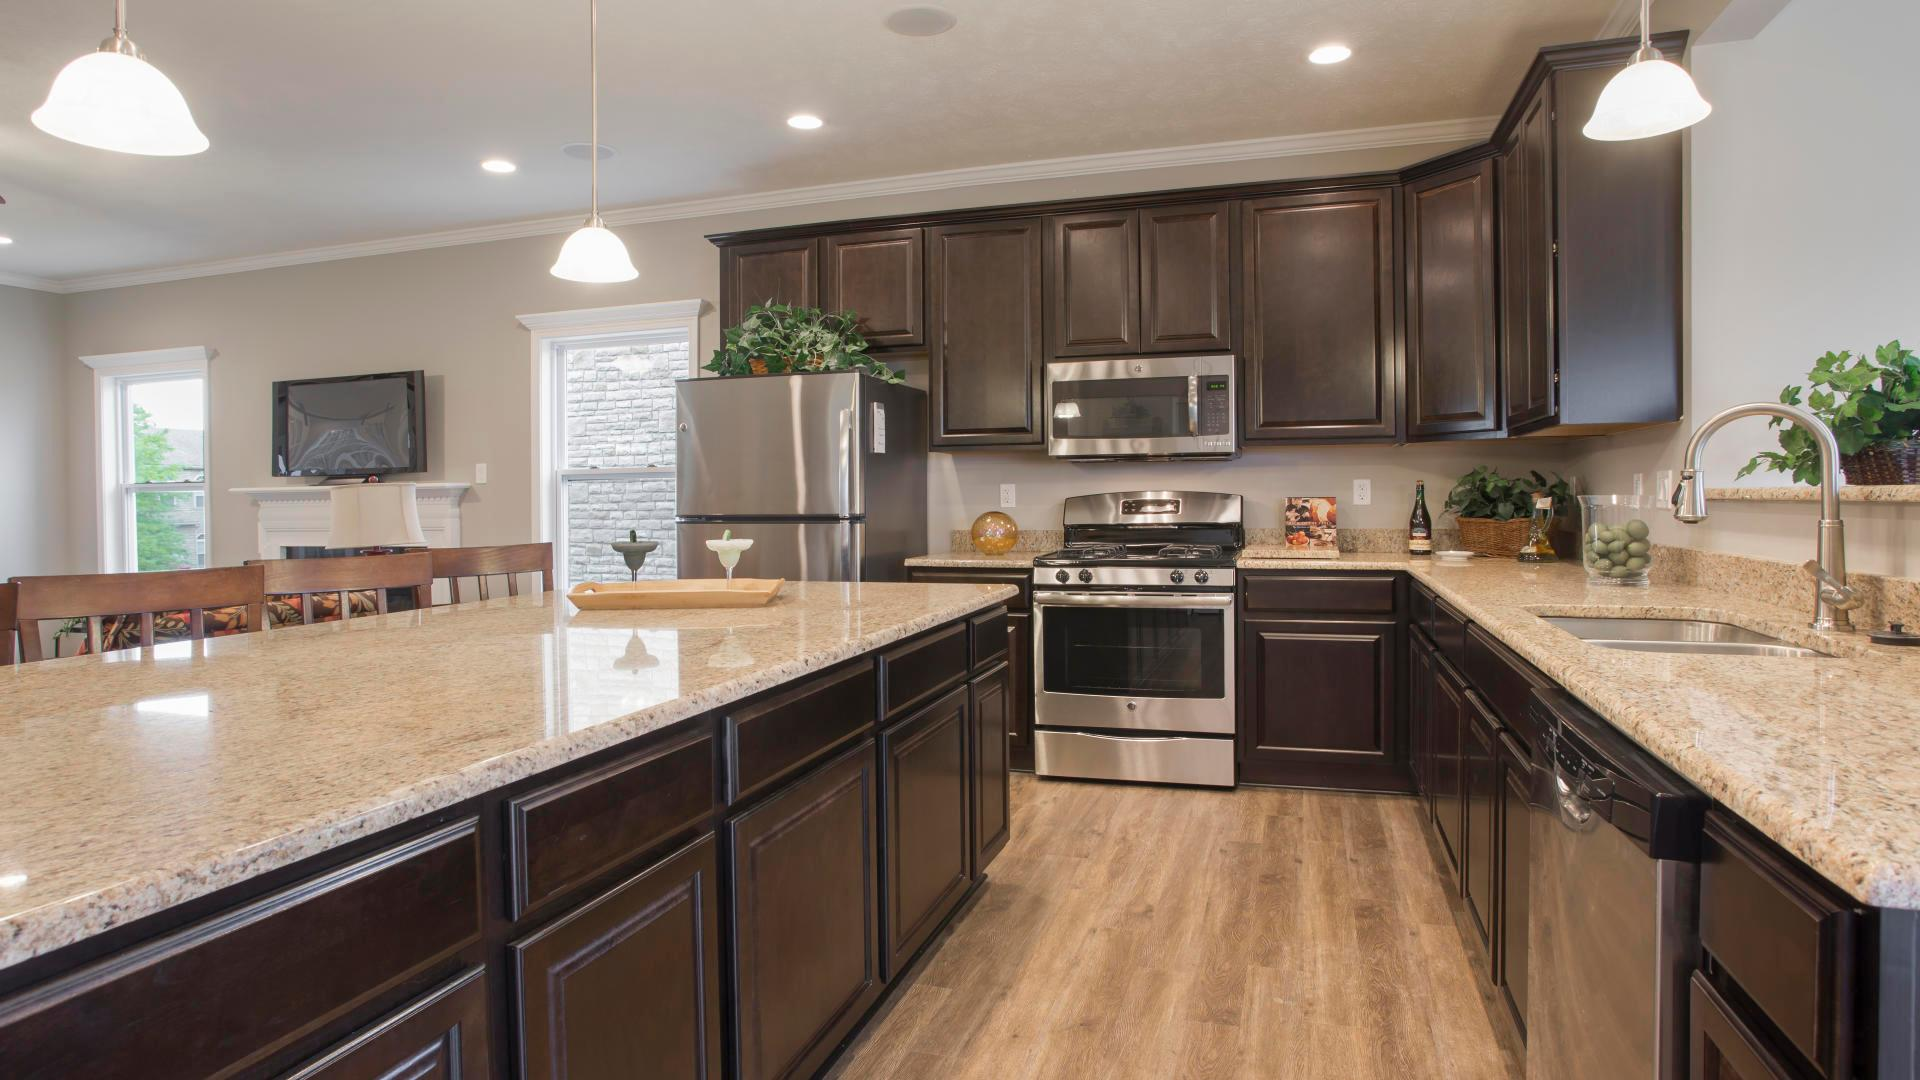 Kitchen featured in the Newbury By Maronda Homes in Pittsburgh, PA